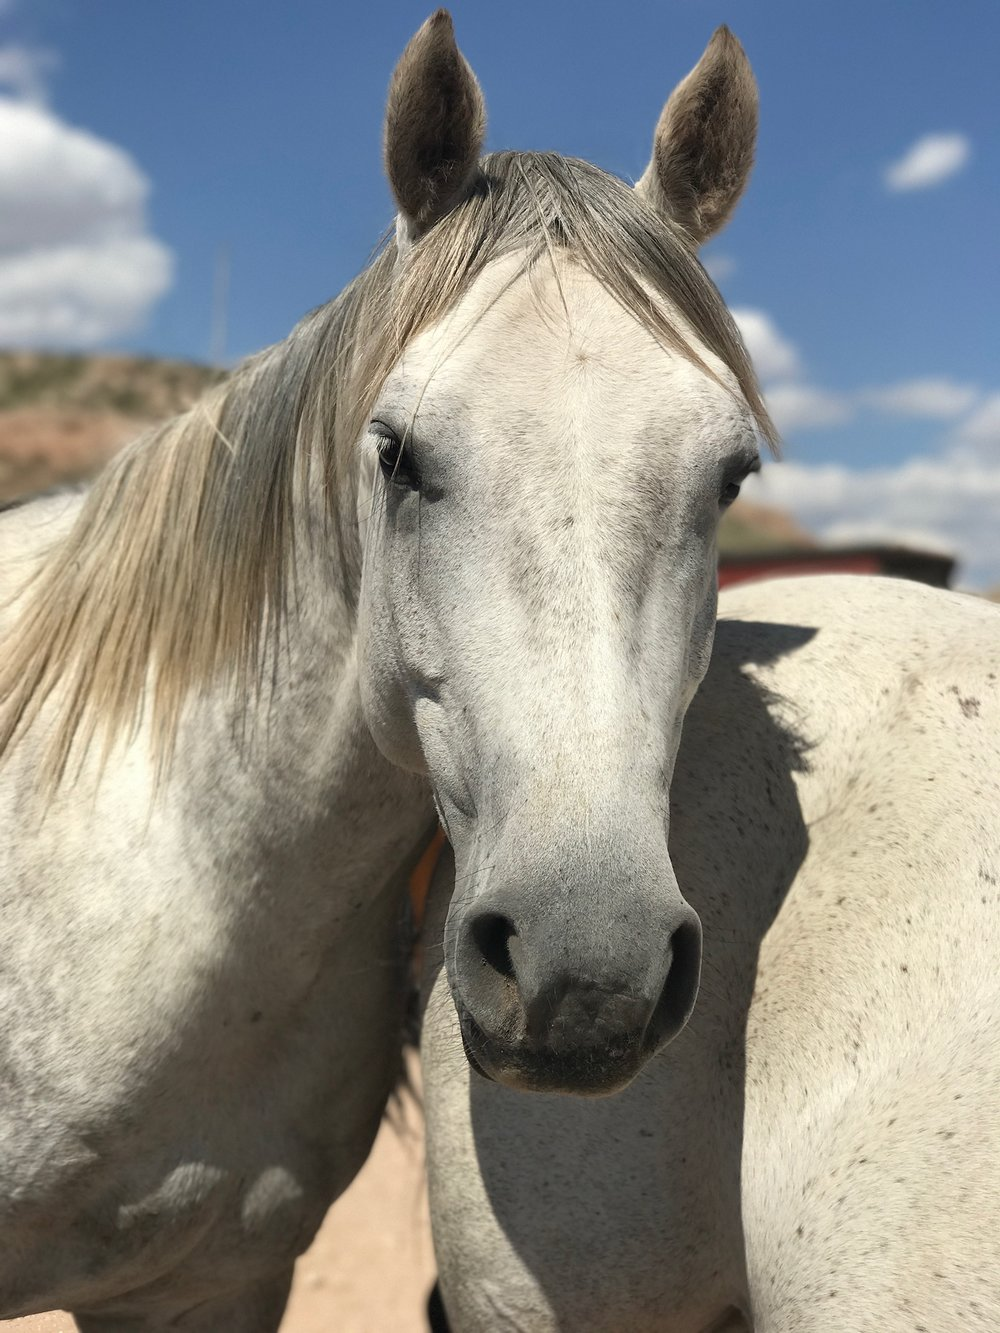 - Age: 7Breed: QuarterhorseColor: GreyGender: MareHeight: 15 HandsTemperament: 3Ground Manners: 3Farrier/Vet: 2Rider Experience: AdvancedRiding Limitations: NoneFEE: $TBD (to be determined)